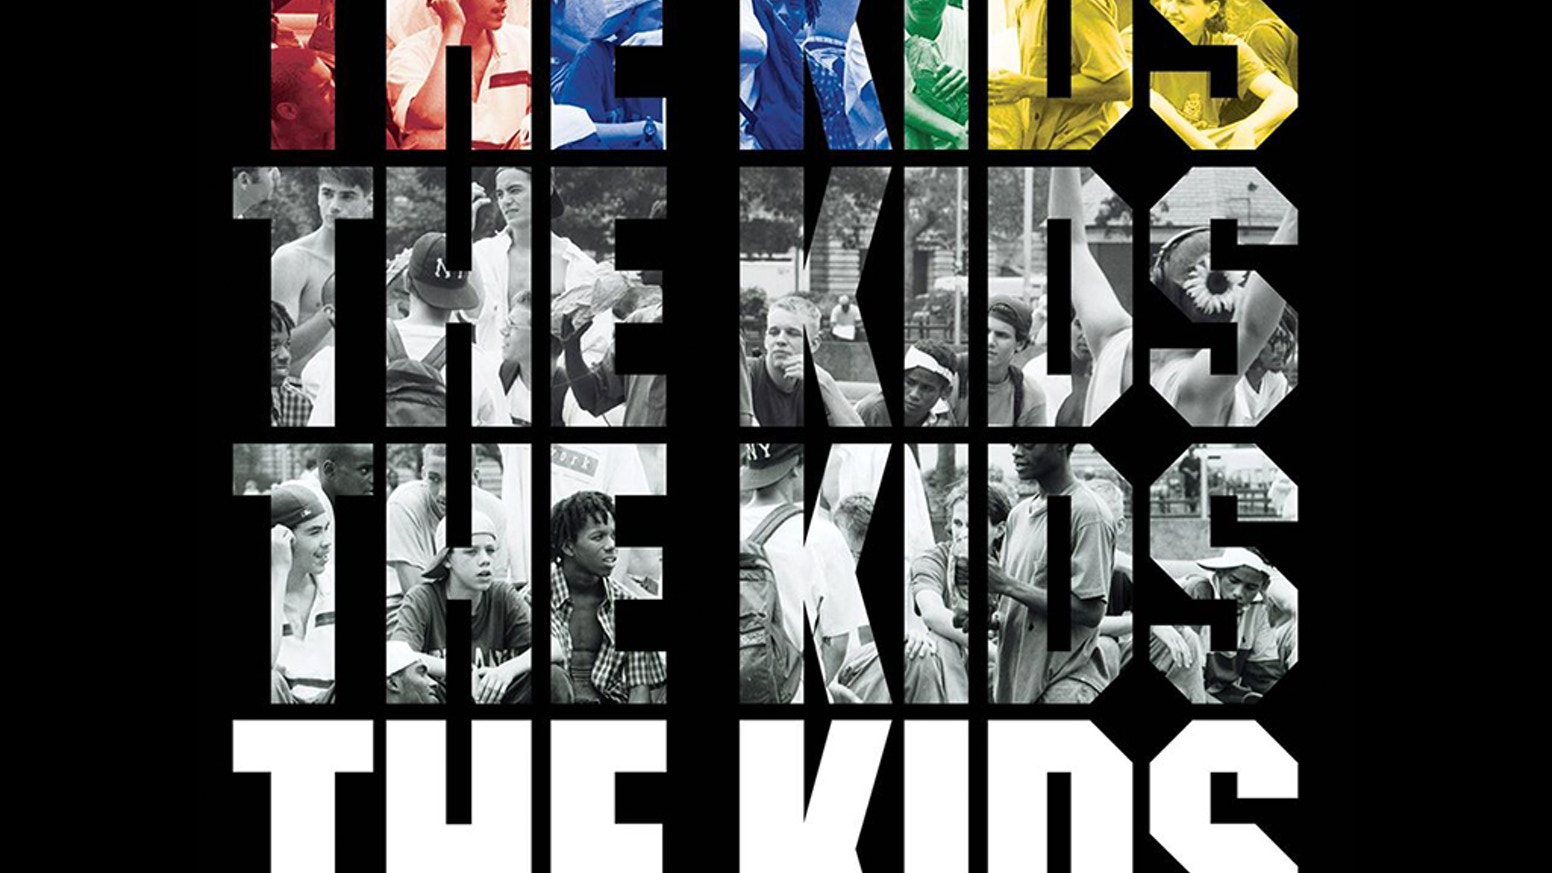 THE KIDS is the unprecedented, all-access documentary about the inside story of the kids who inspired the 1995 cult classic film KIDS.